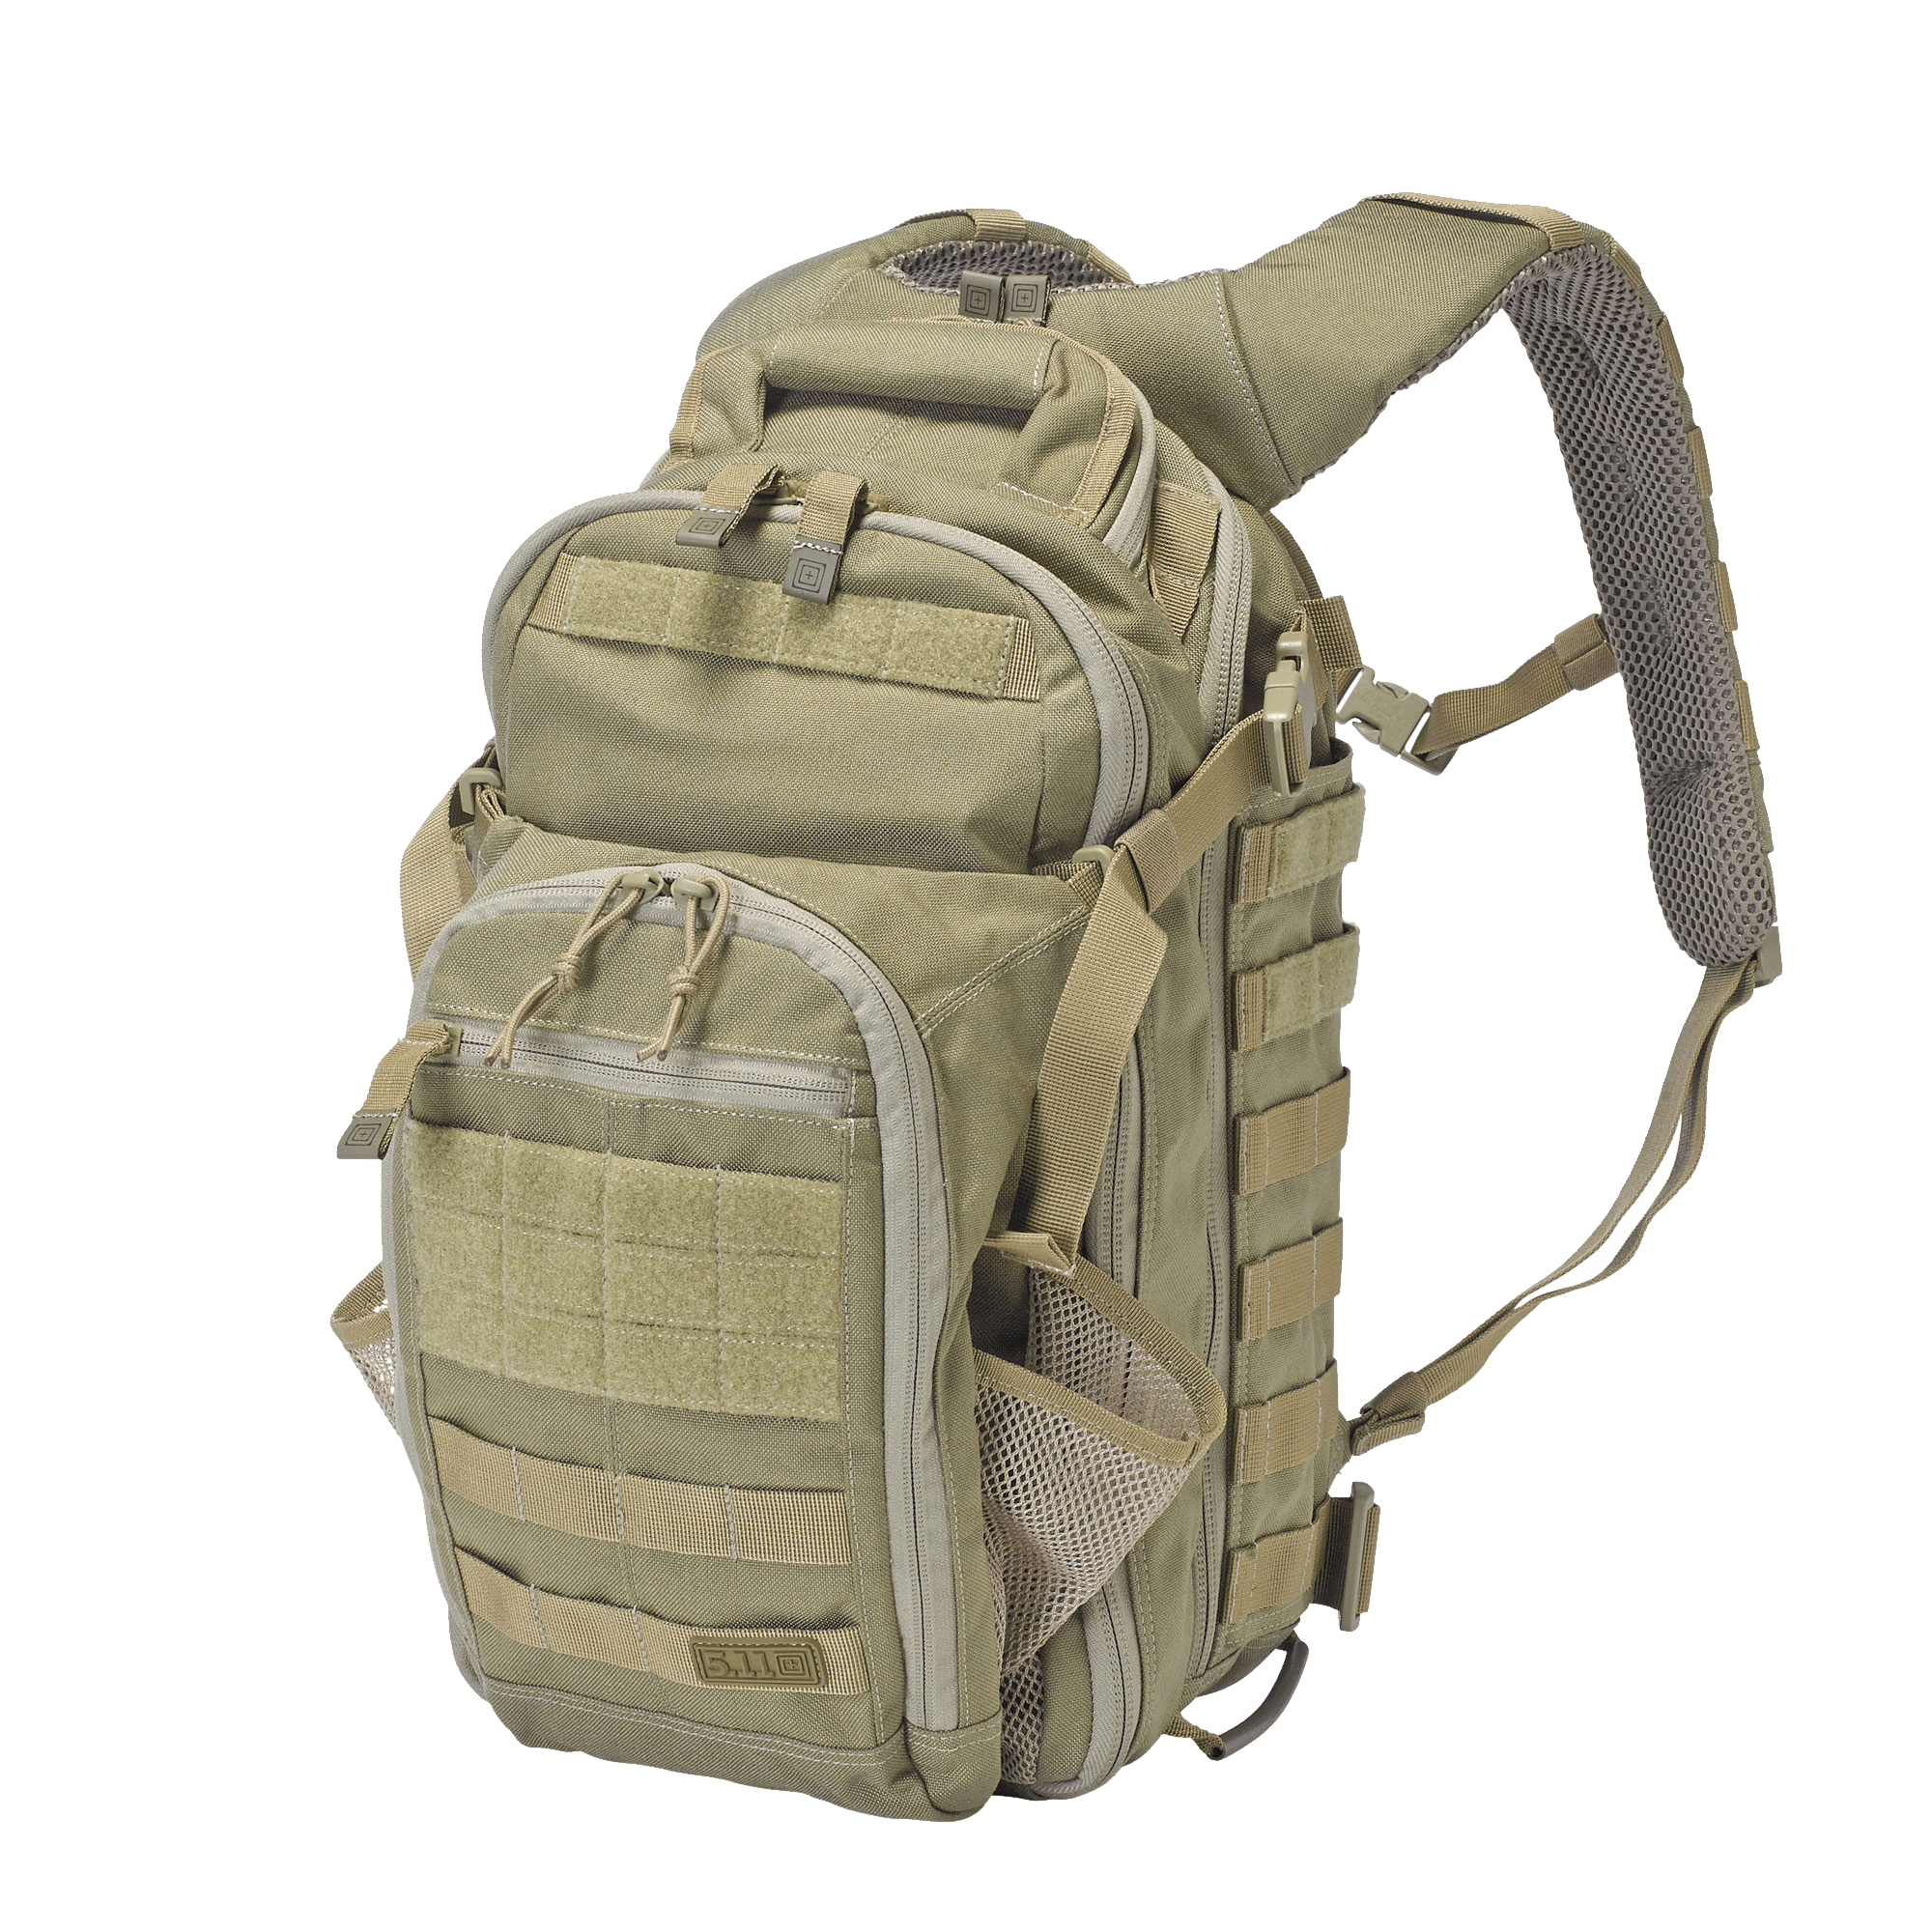 Military Backpack Png Image PNG Image